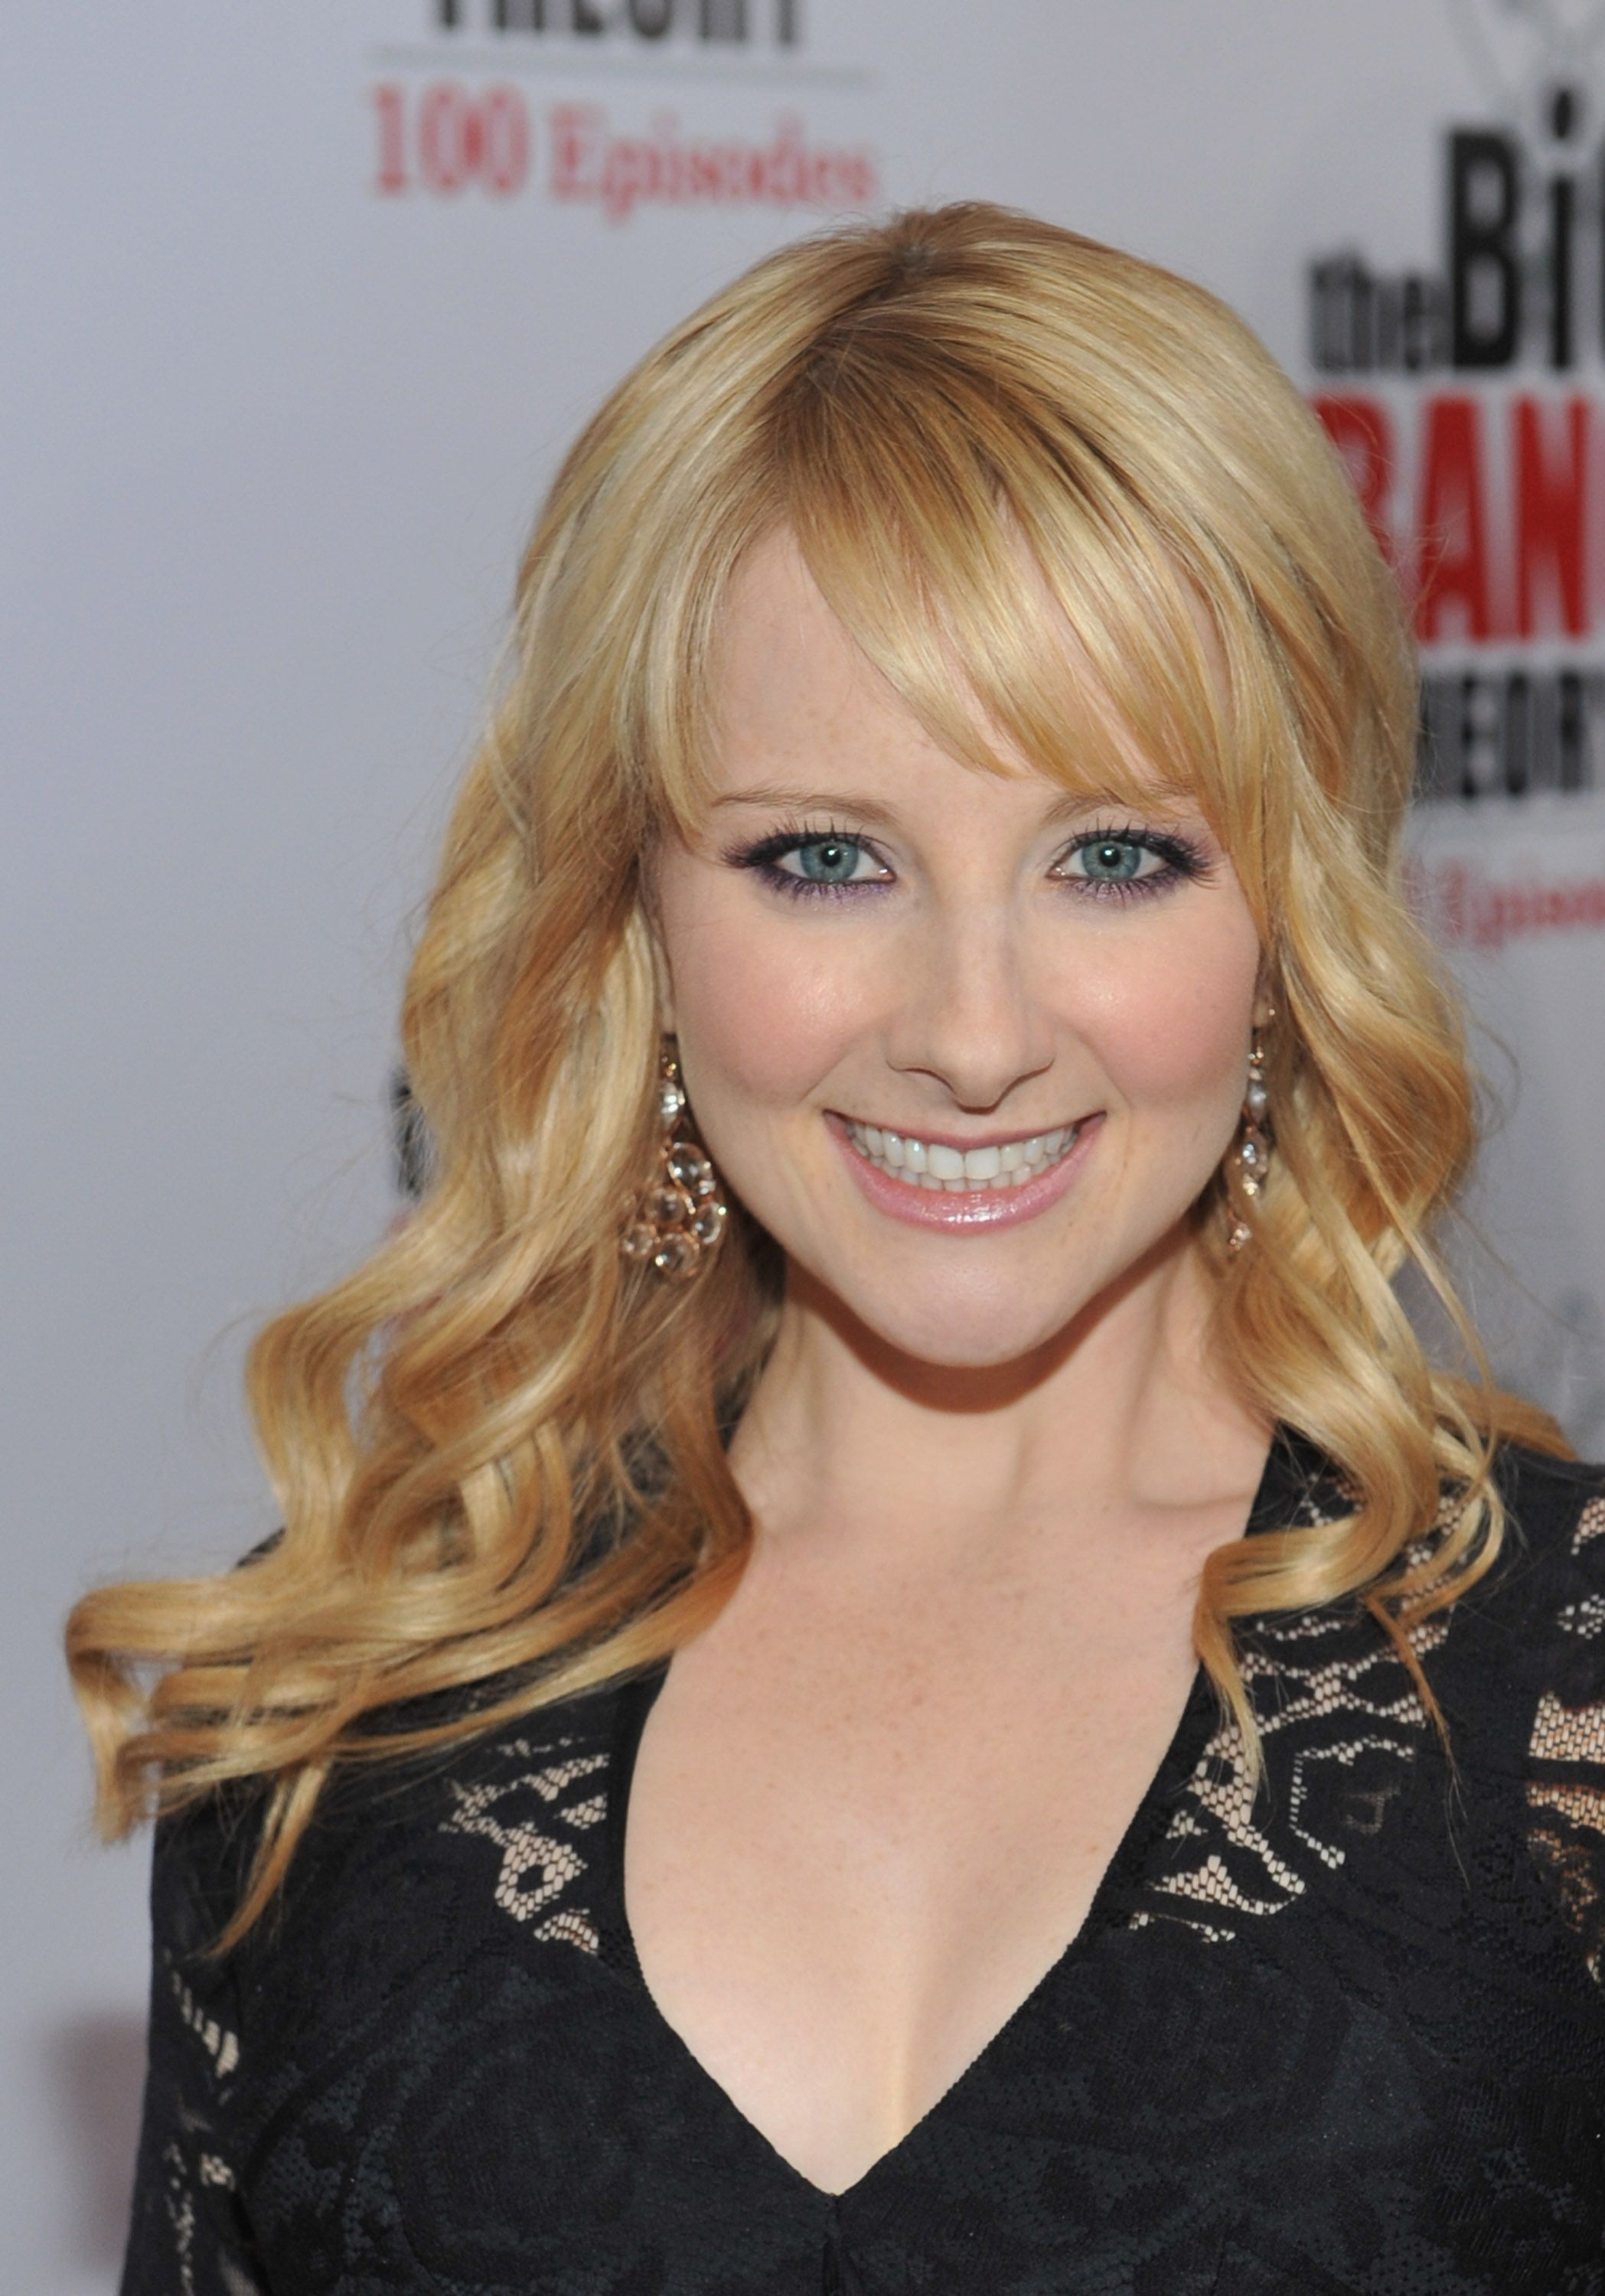 Paparazzi Melissa Rauch nudes (38 photo), Pussy, Is a cute, Twitter, panties 2020